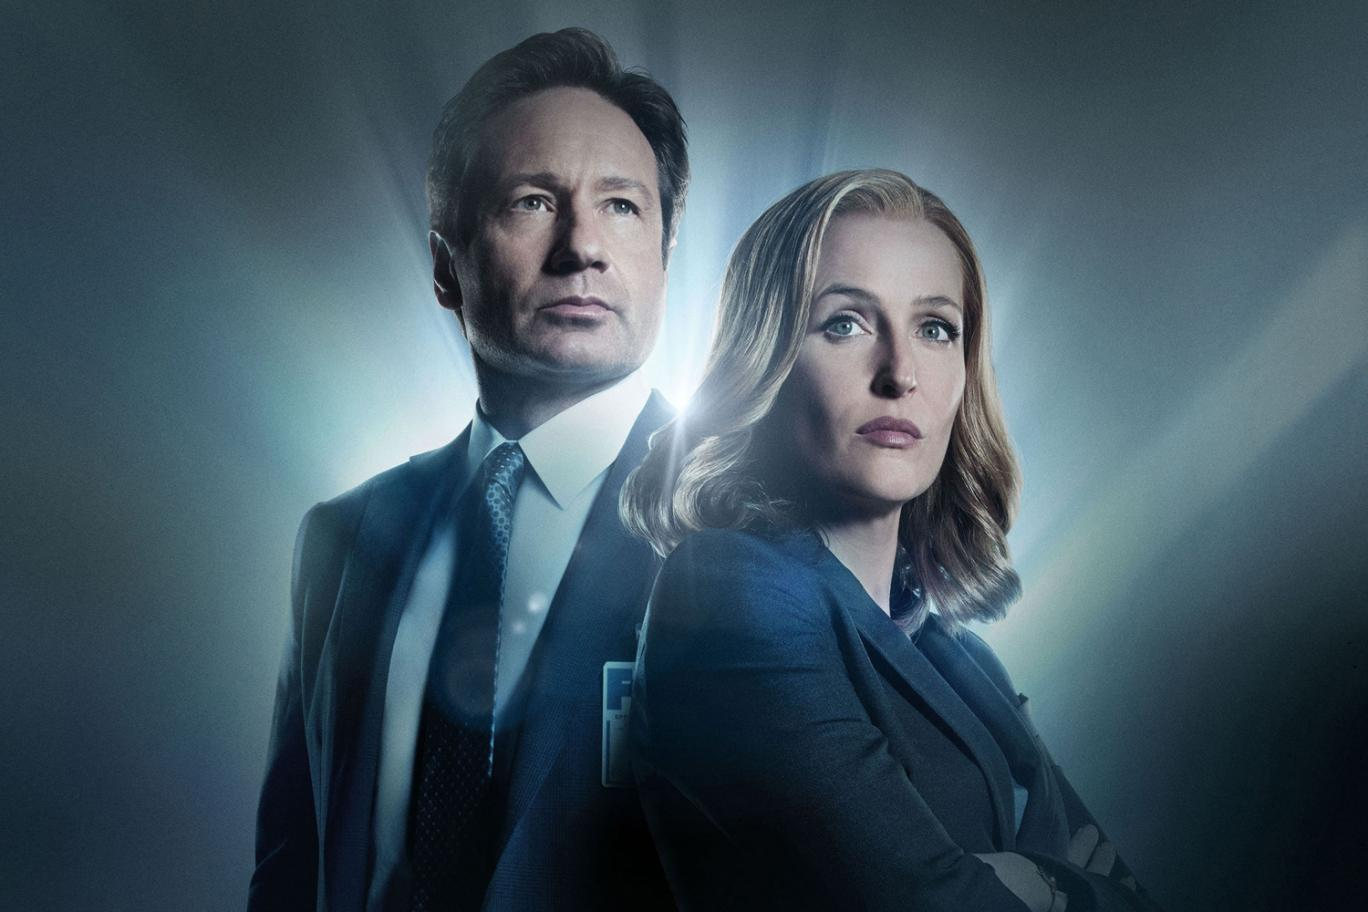 Video: The past is present again: The CraveCast talks VR and 'X-Files' in 2016, Ep. 21